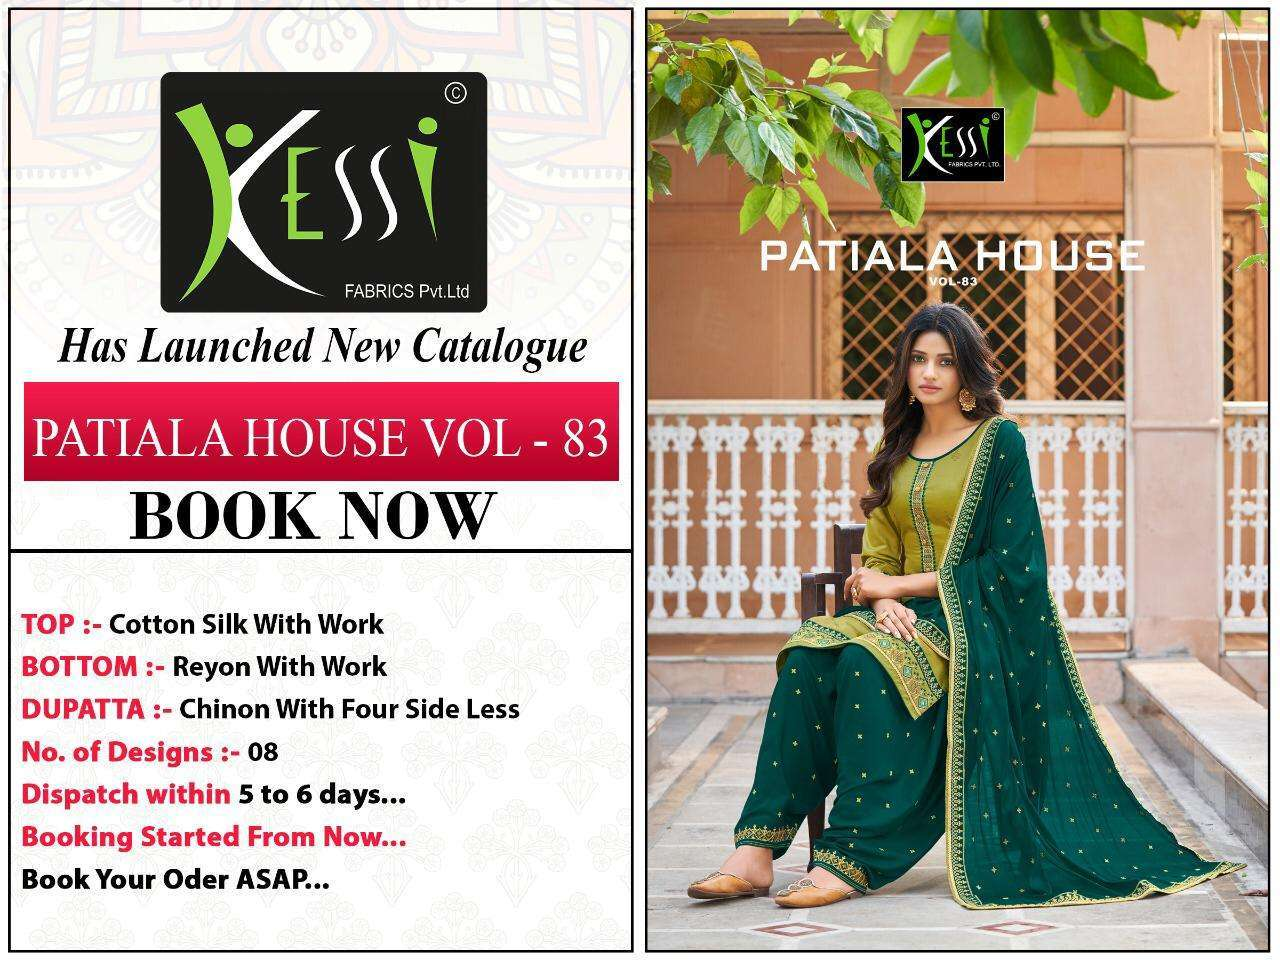 Kessi - Patiala House Vol 83